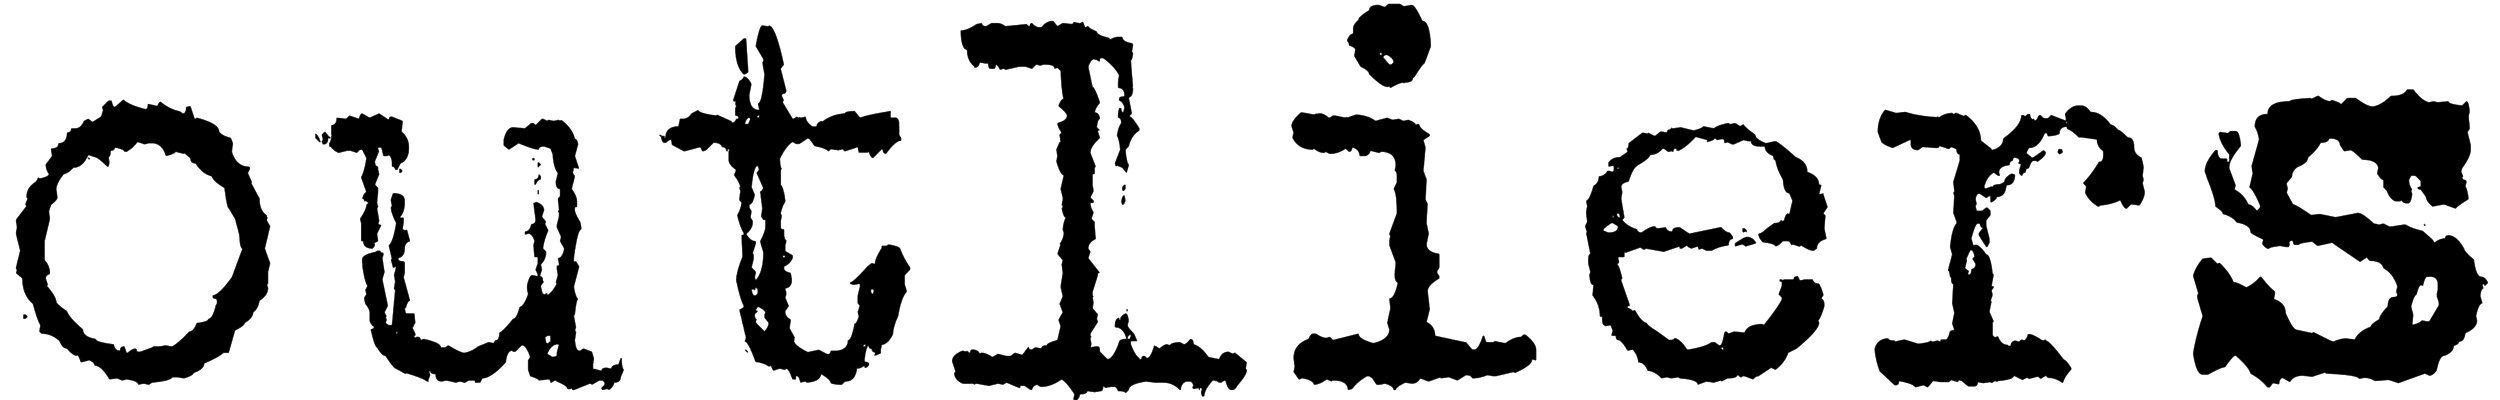 outliers-logo-inertia-network-tight-black.png